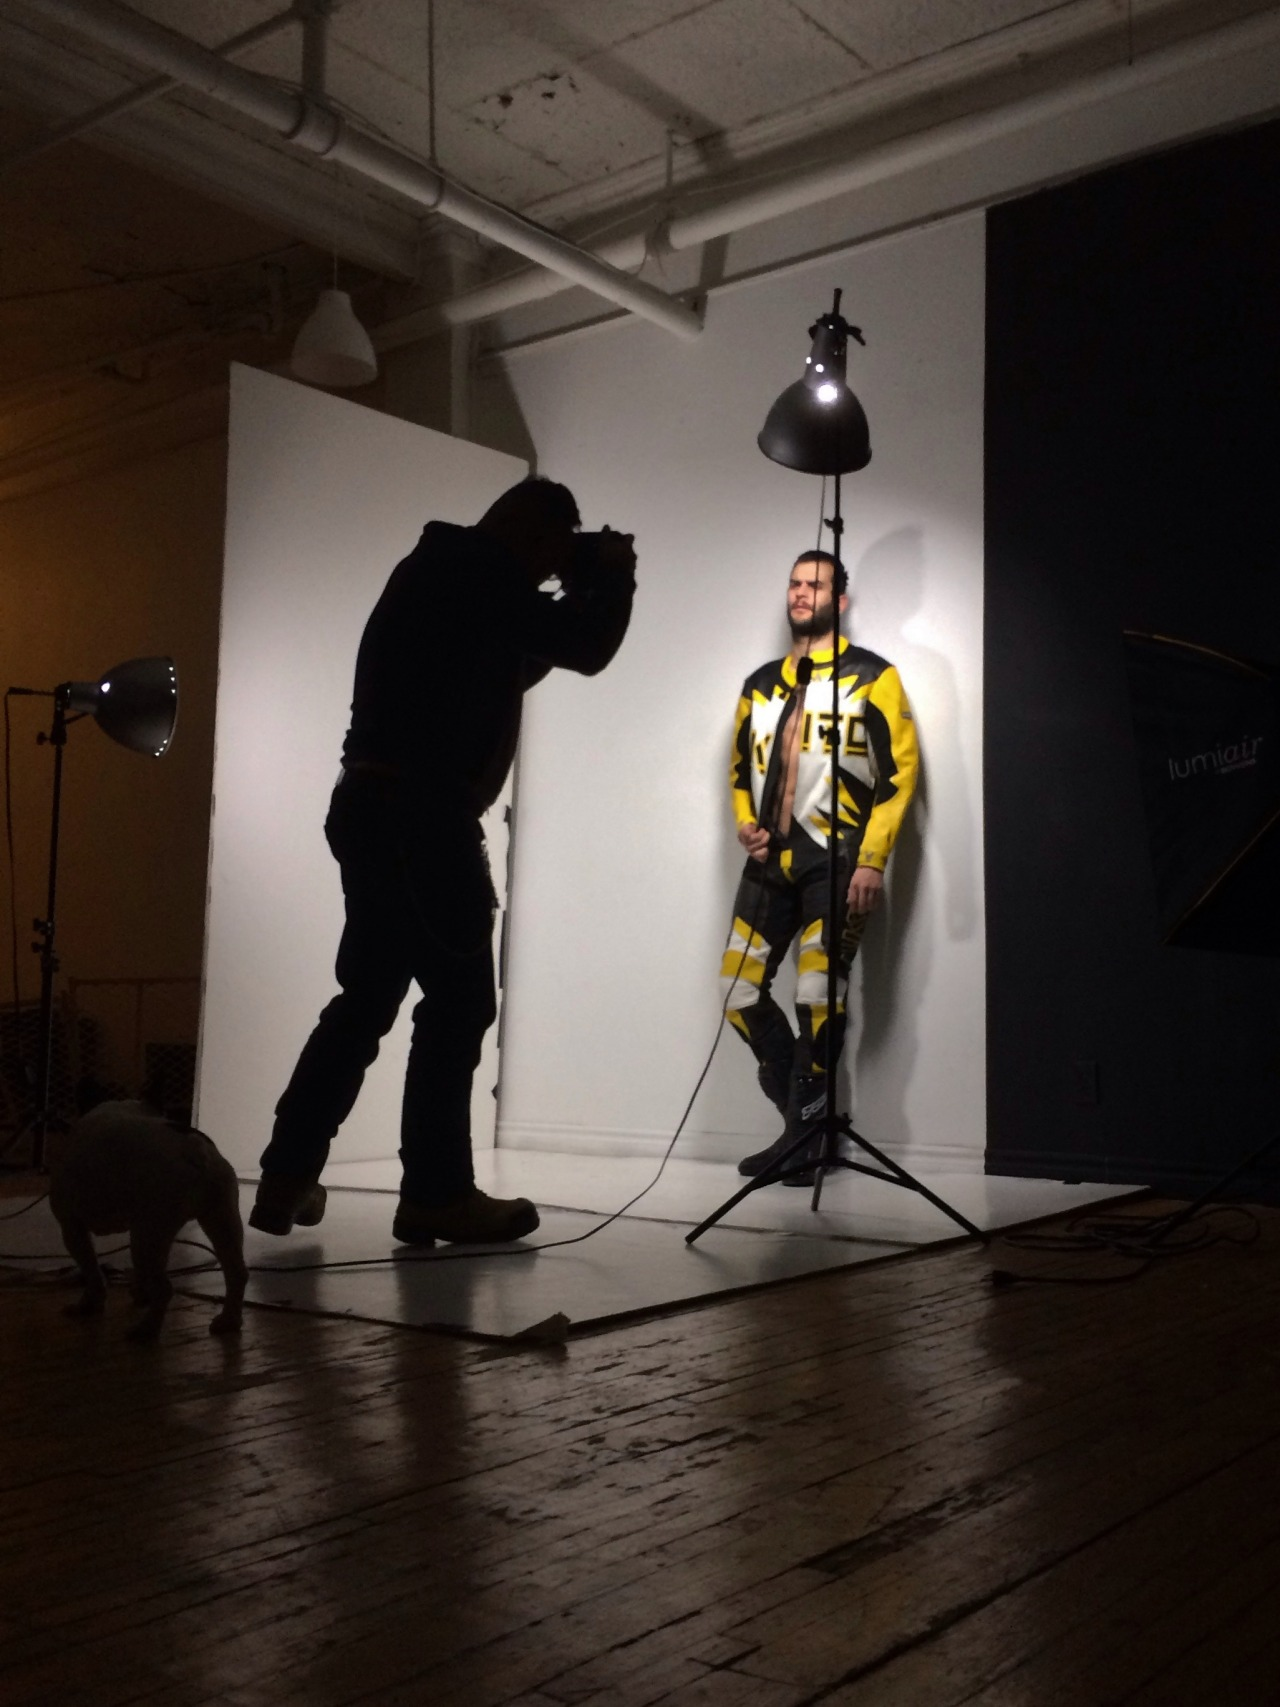 2018-06-04 05:23:12 - abeardedboy behind the scenes at the shoot with beardburnme http://www.neofic.com